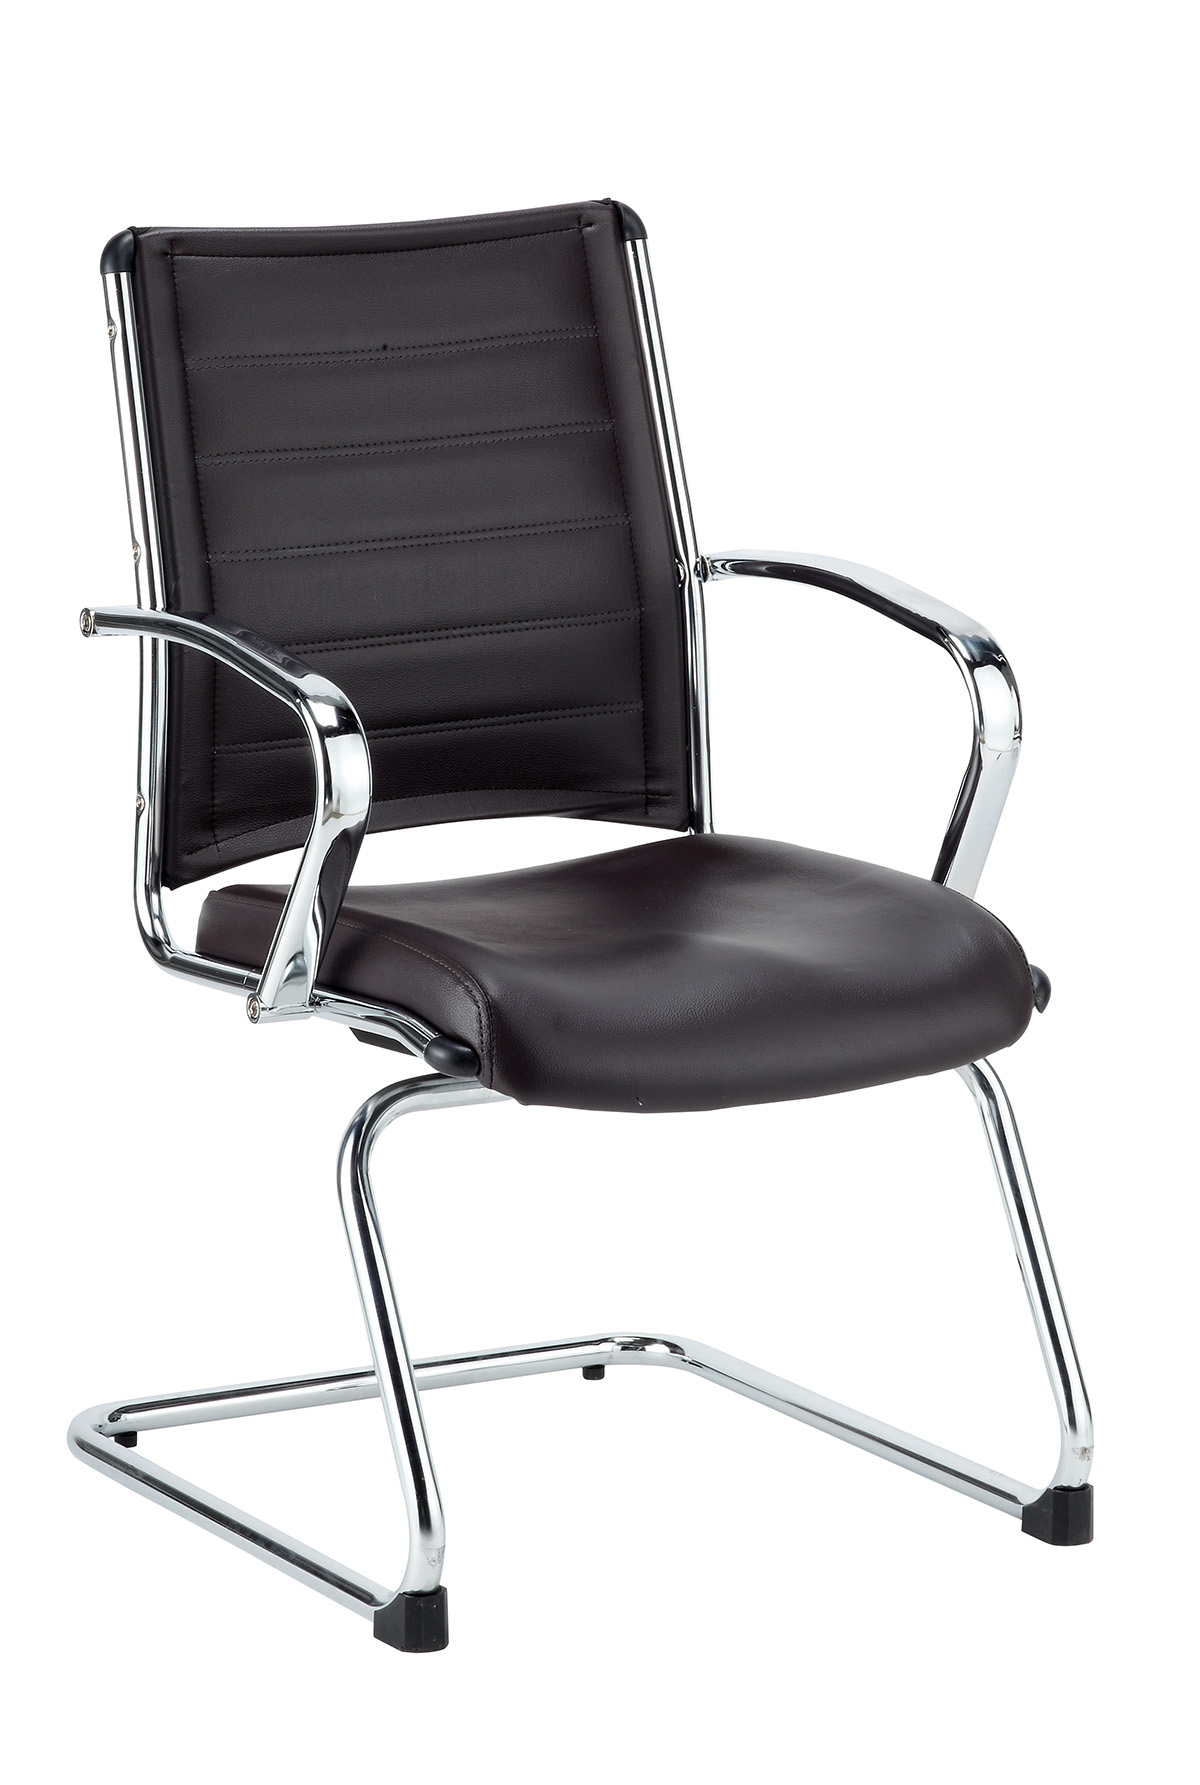 Eurotech Europa leather Guest Chair Black